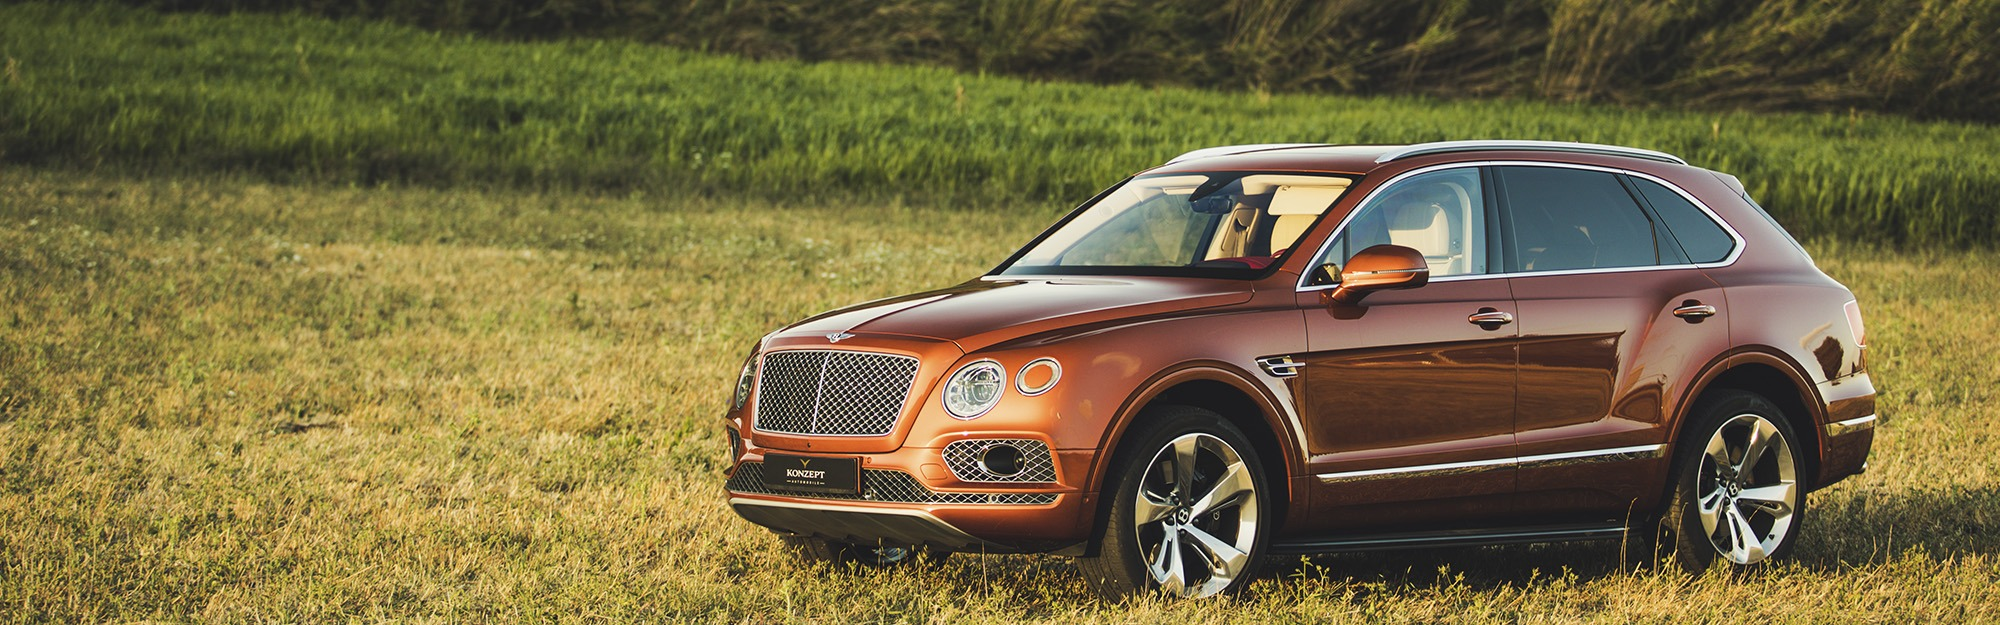 Bentley Bentayga Usado Venda Lisboa